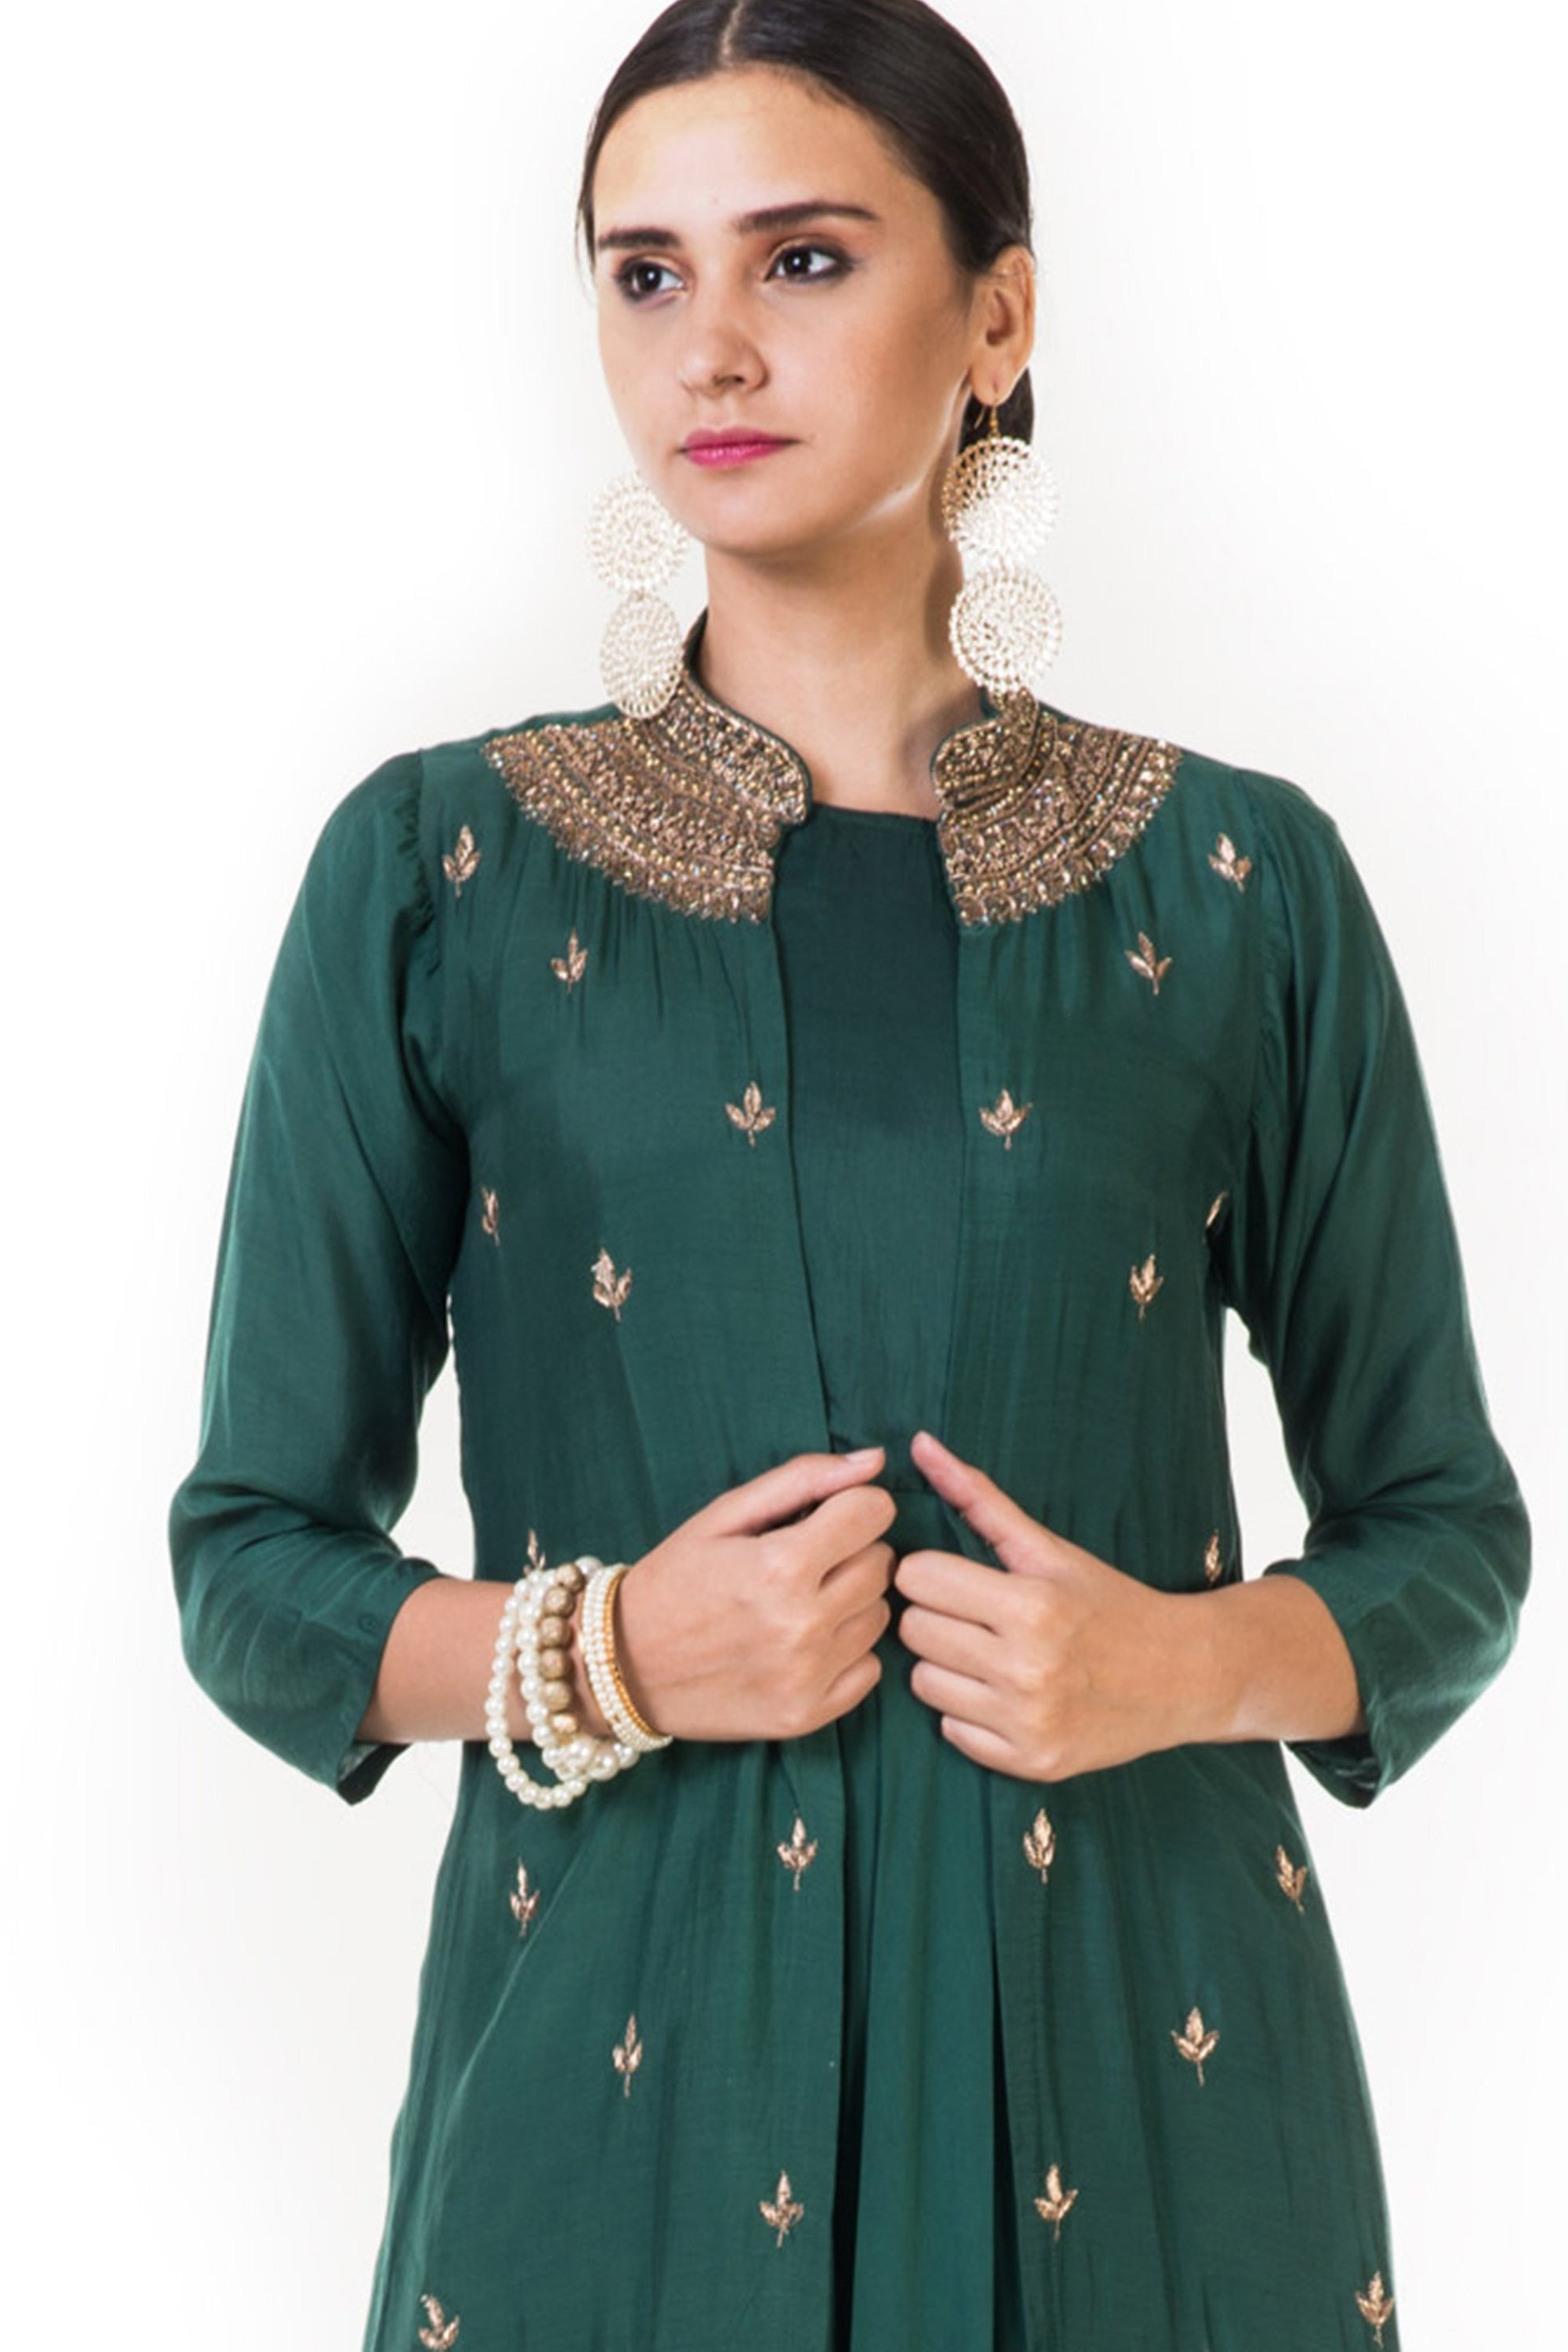 Bottle Green Leaf Embroidered Jacket & Gown CLOSE